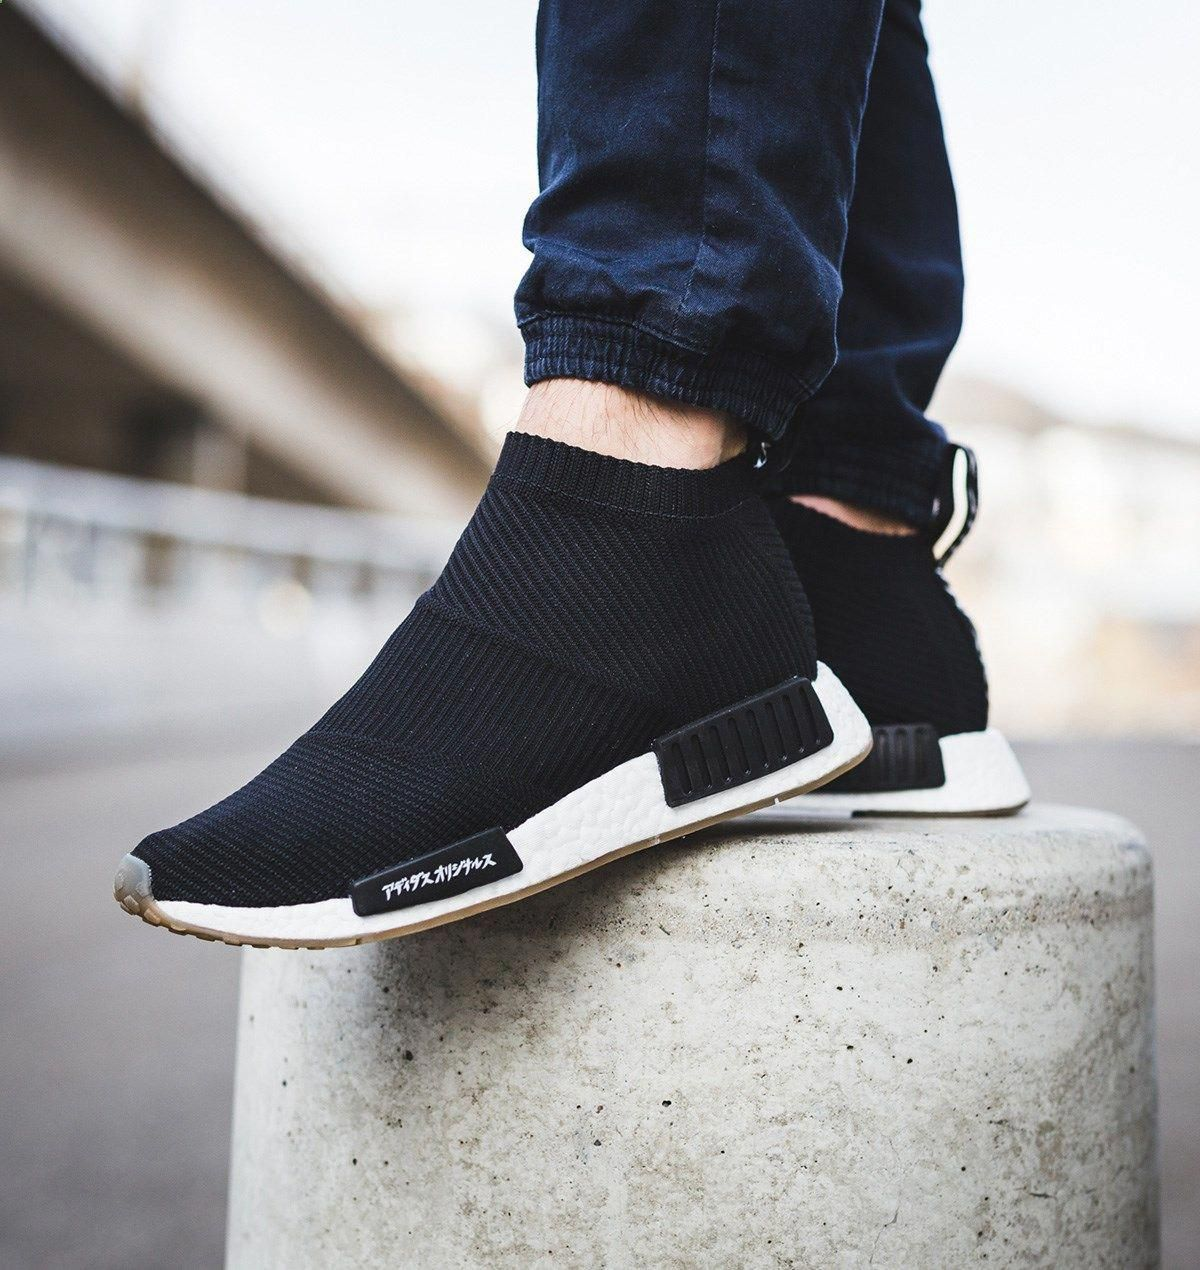 On Foot: MIKITYPE x United Arrows Sons x adidas NMD CS1